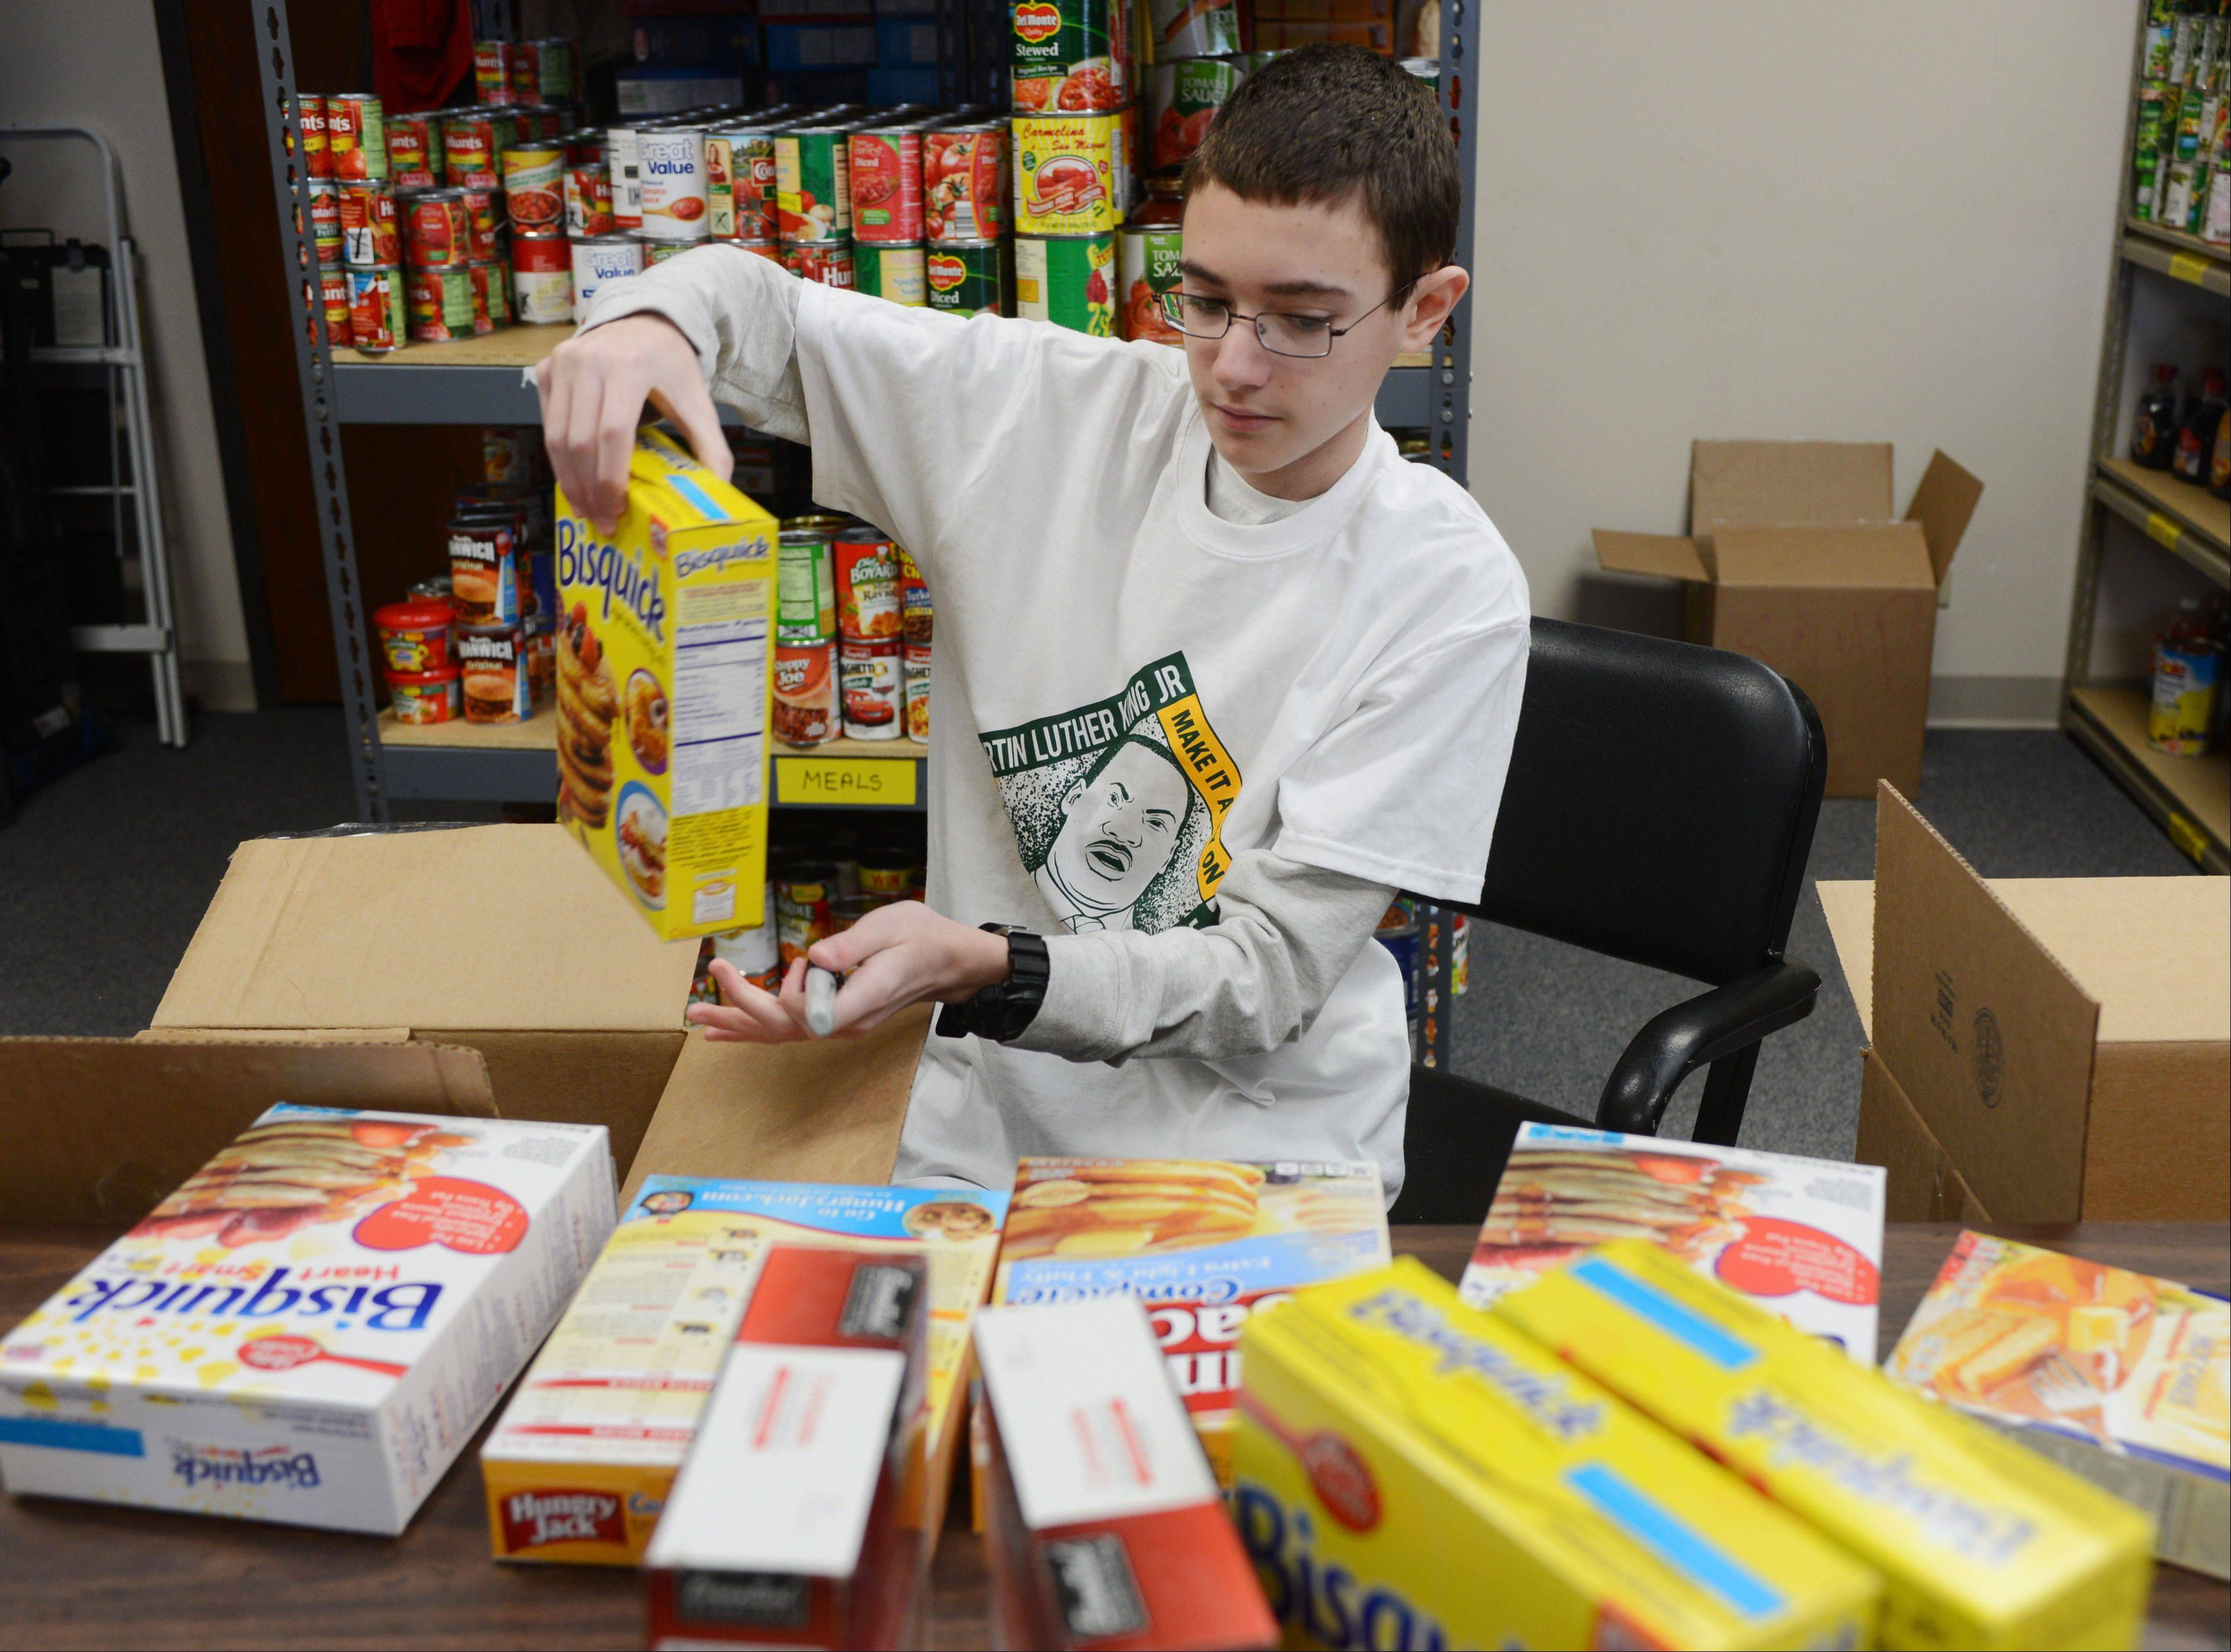 Stevenson High School freshman Matthew Weiner checks expiration dates on pancake mixes Monday at the Vernon Township Food Pantry. Stevenson students fanned out across Lake County to work on community projects for Marting Luther King Jr. Day.